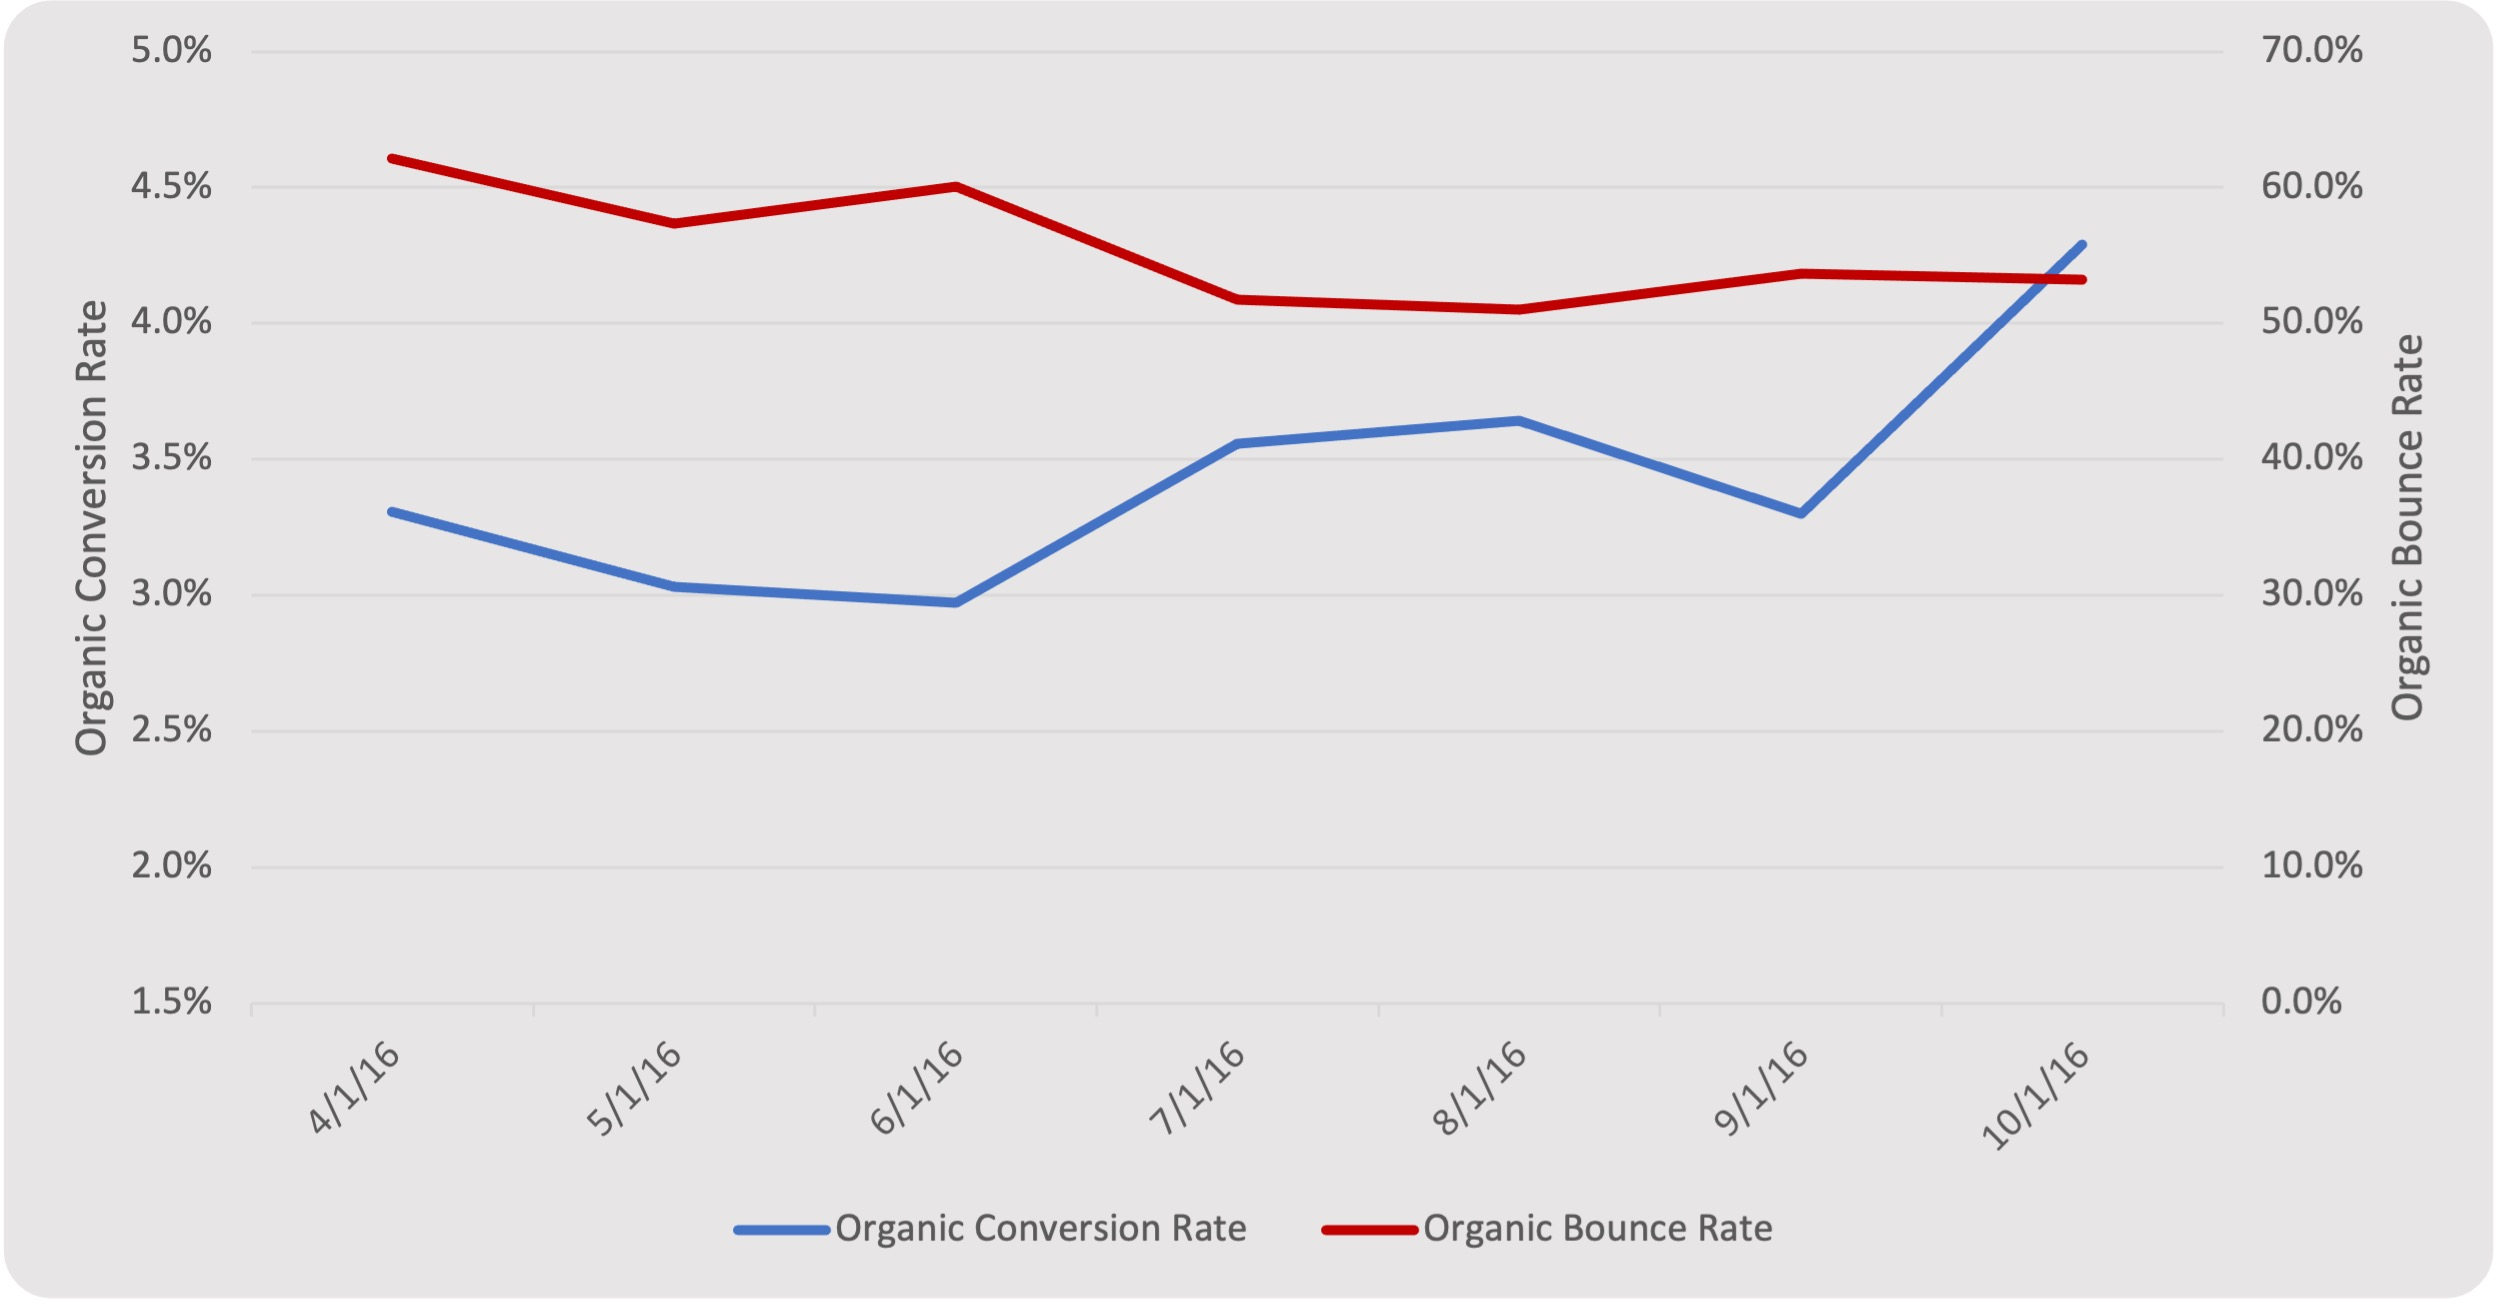 Reduction in organic bounce rate and increase in organic conversion rate.